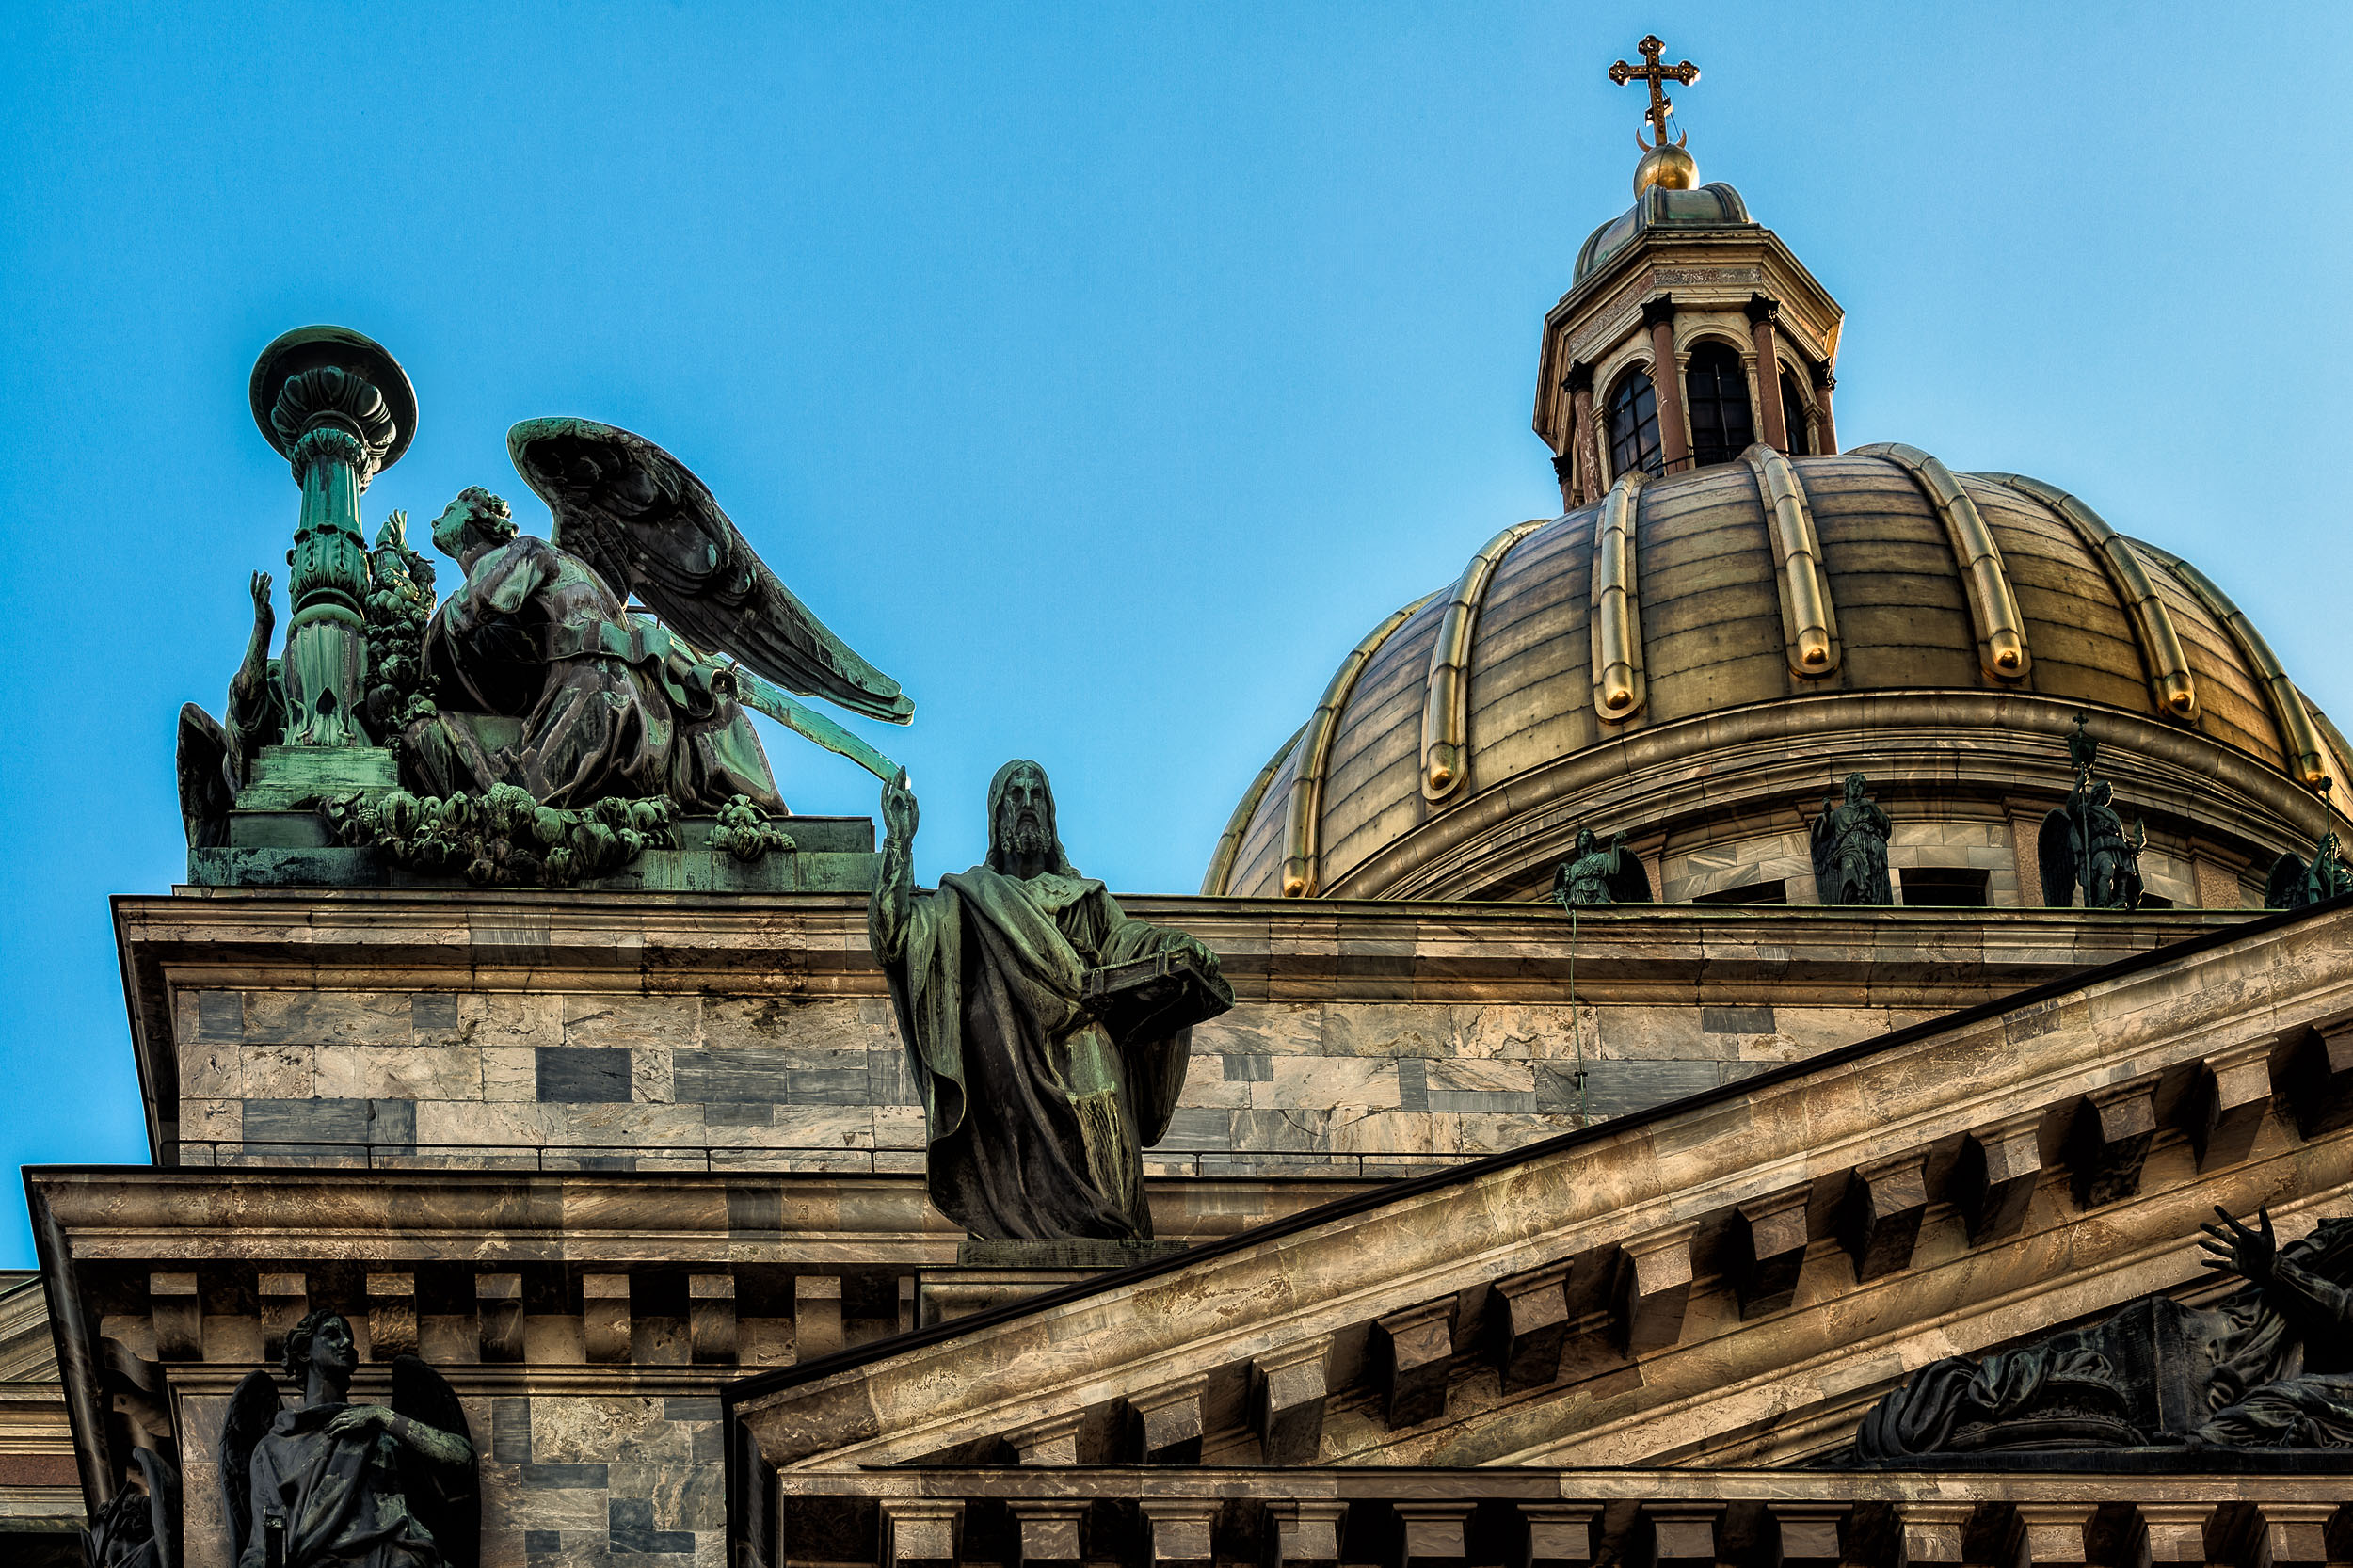 A dramatic view of the  dome and statues  at  St. Isaac's Cathedral ,  St. Petersburg, Russia .